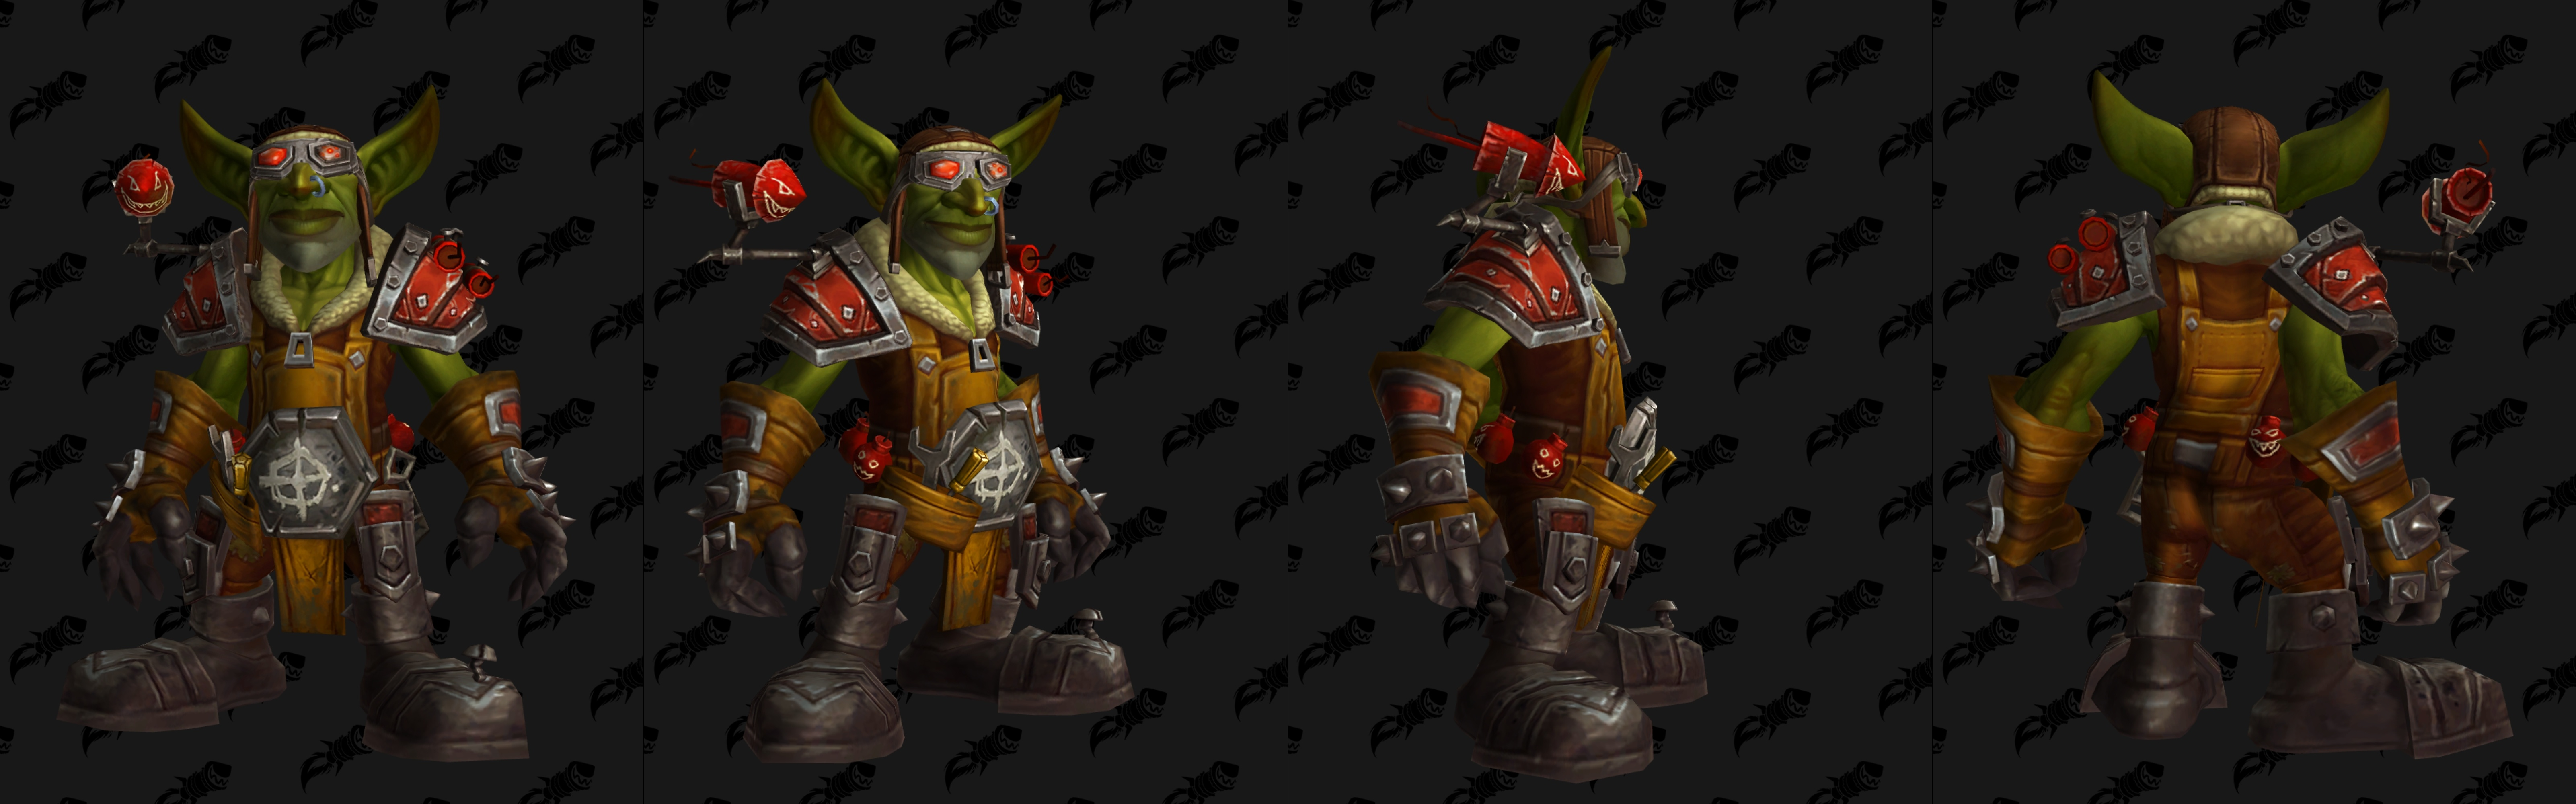 Heritage Armor Sets Guides Wowhead Therefore, it is quite natural that every wow player wants to play. heritage armor sets guides wowhead